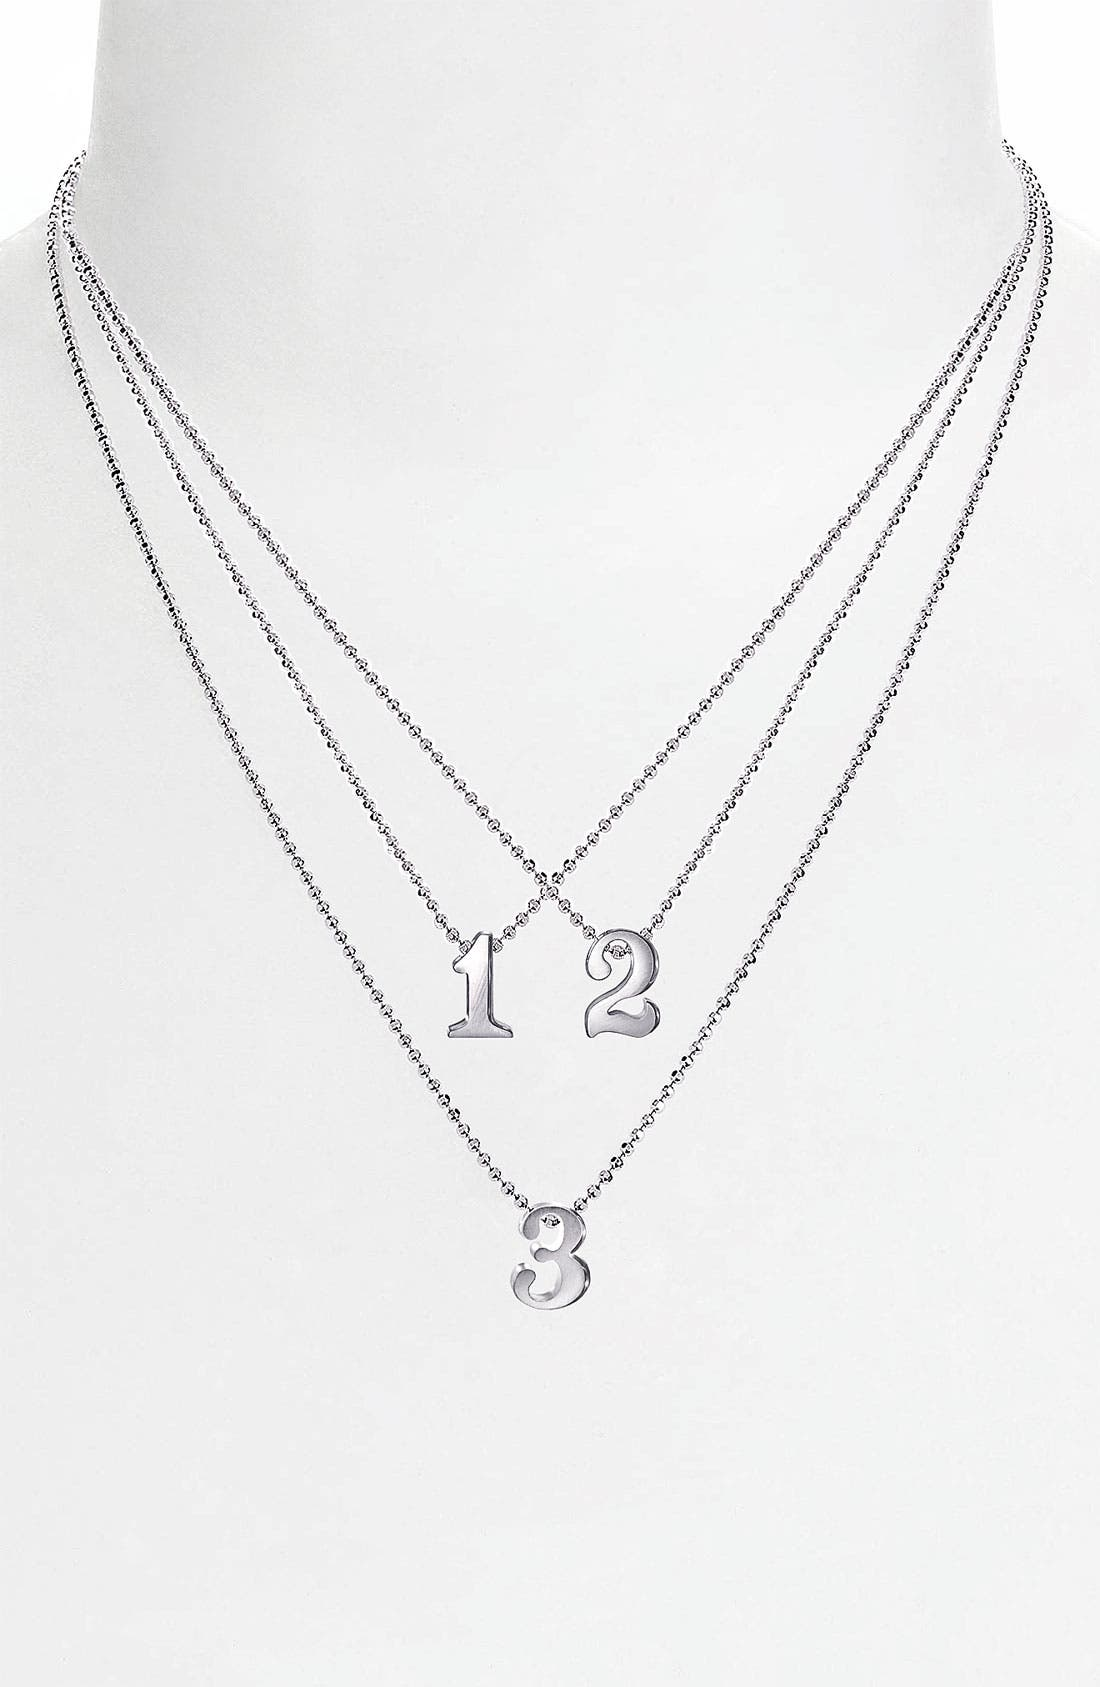 Main Image - Alex Woo 'Little Numbers' Pendant Necklace